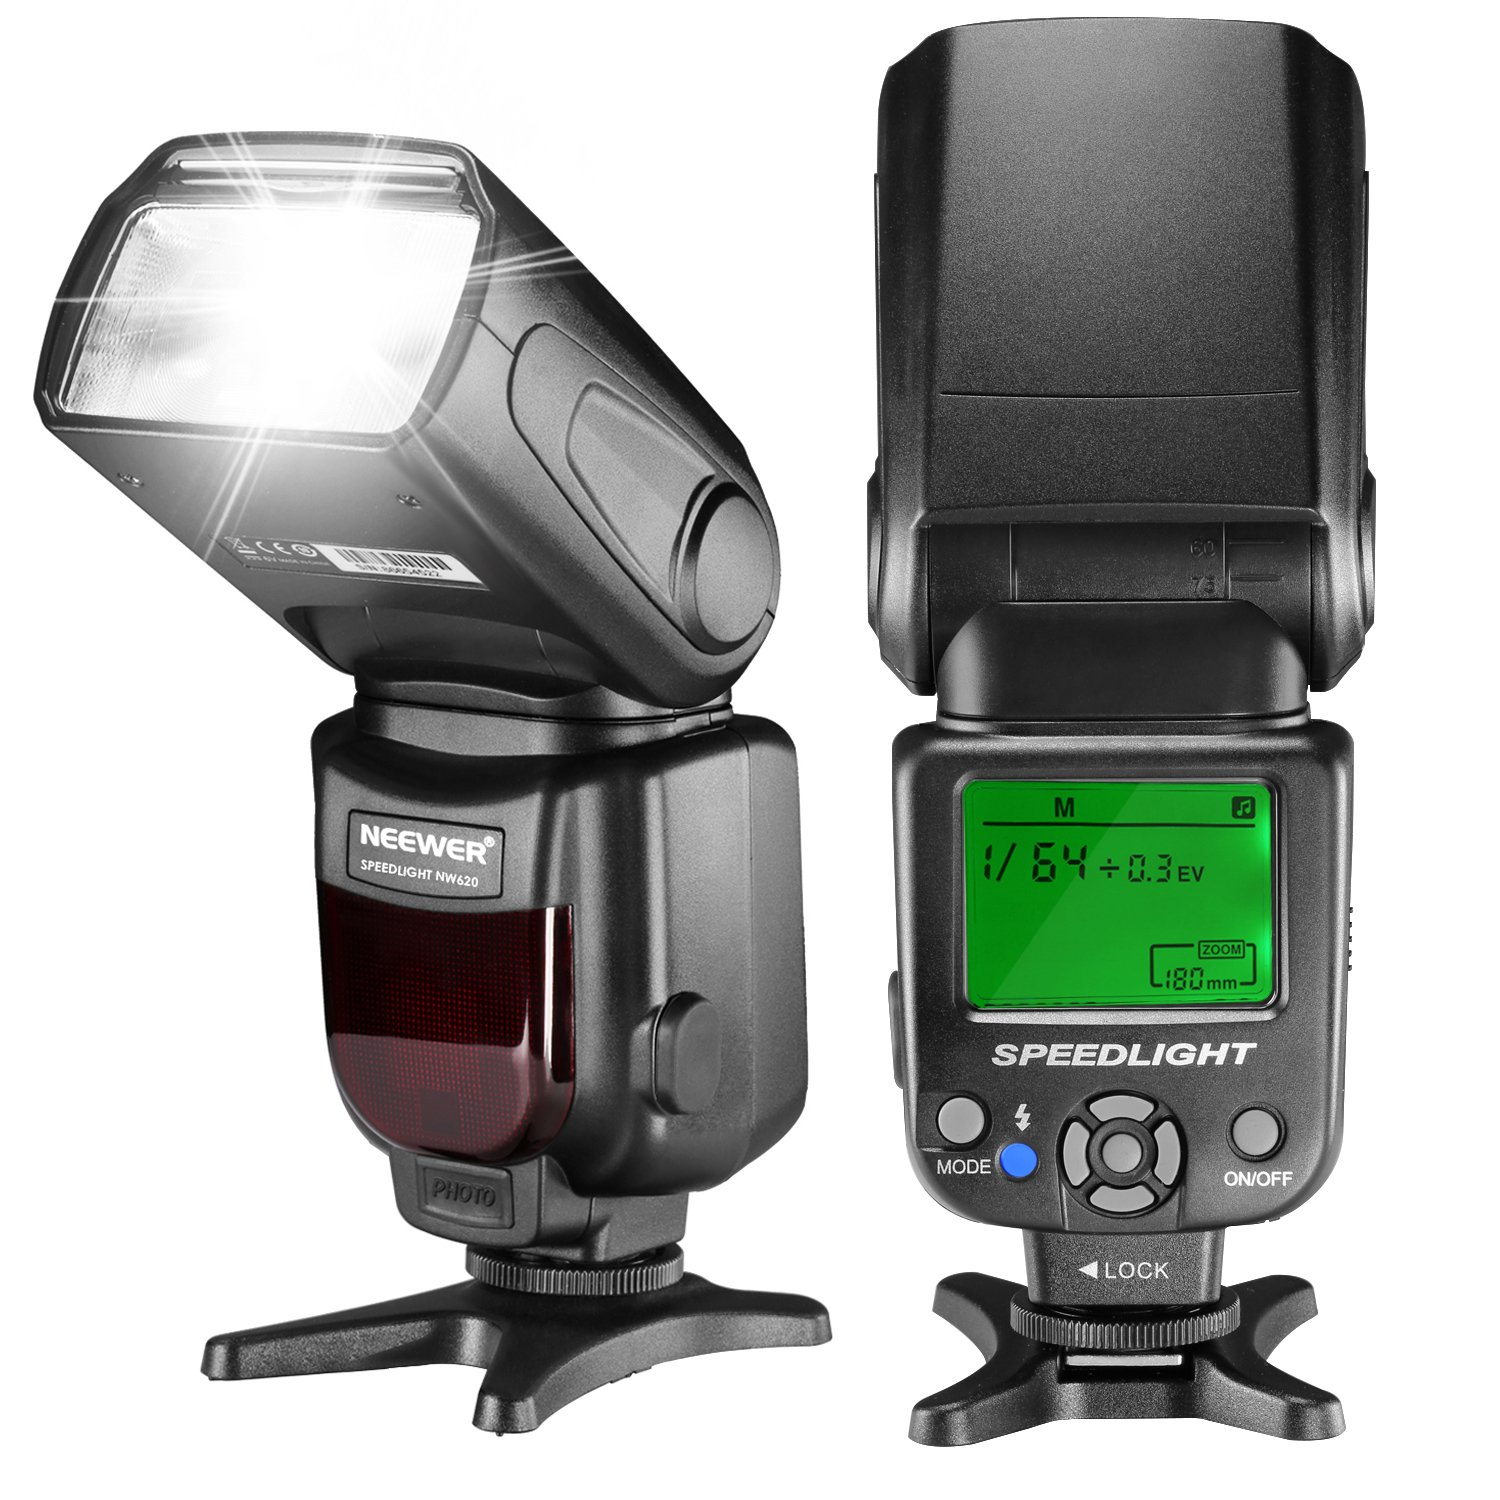 Neewer NW620 Manual Speedlite Cameras Image 3